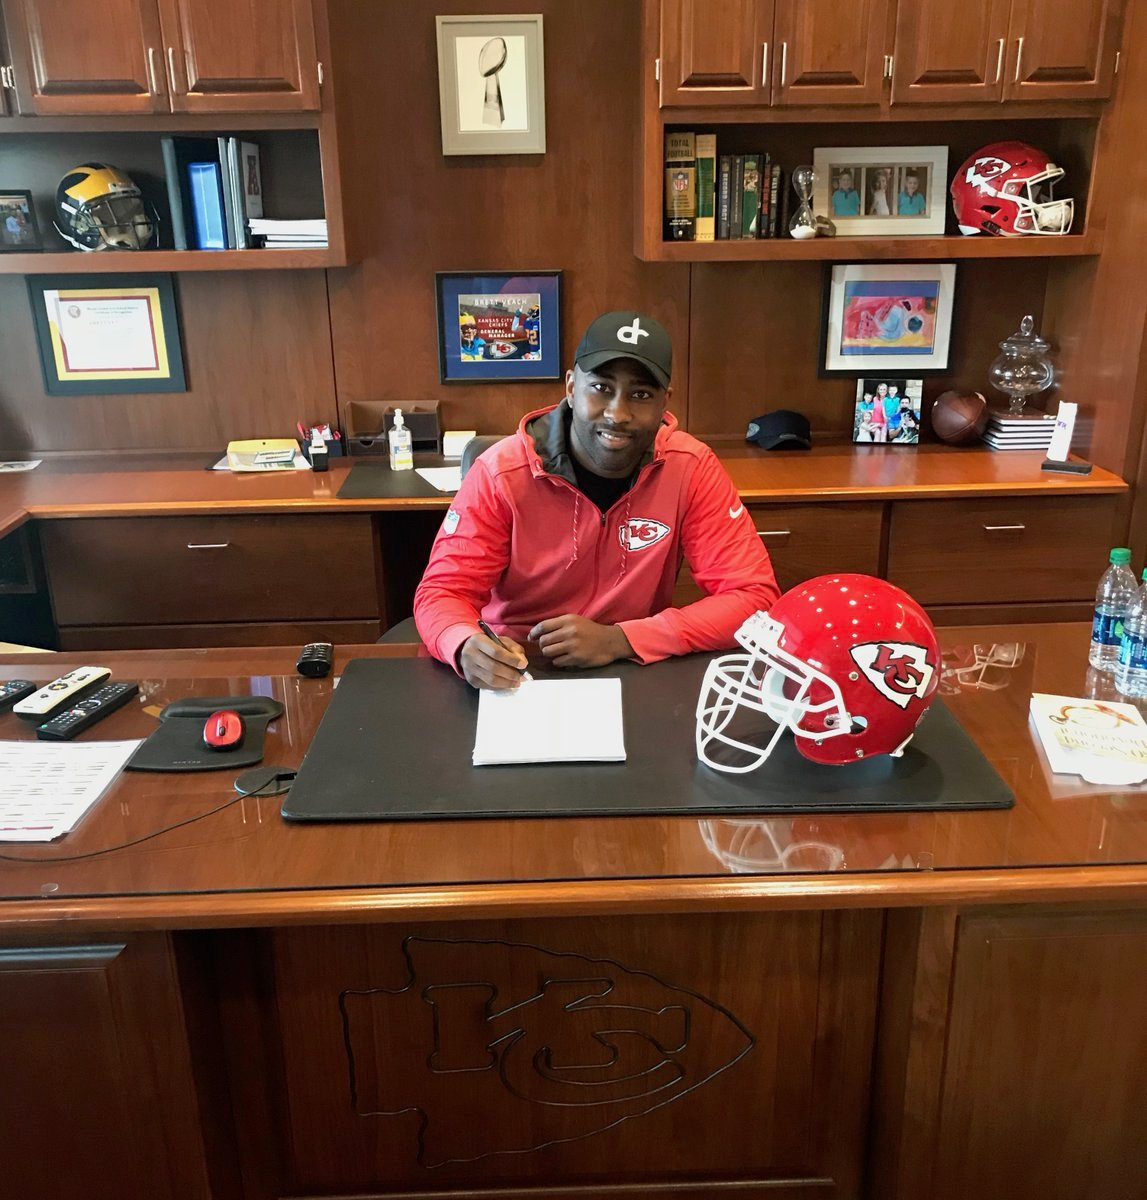 Kansas City Chiefs Sign Darrelle Revis: How Old Is He, Contract Length